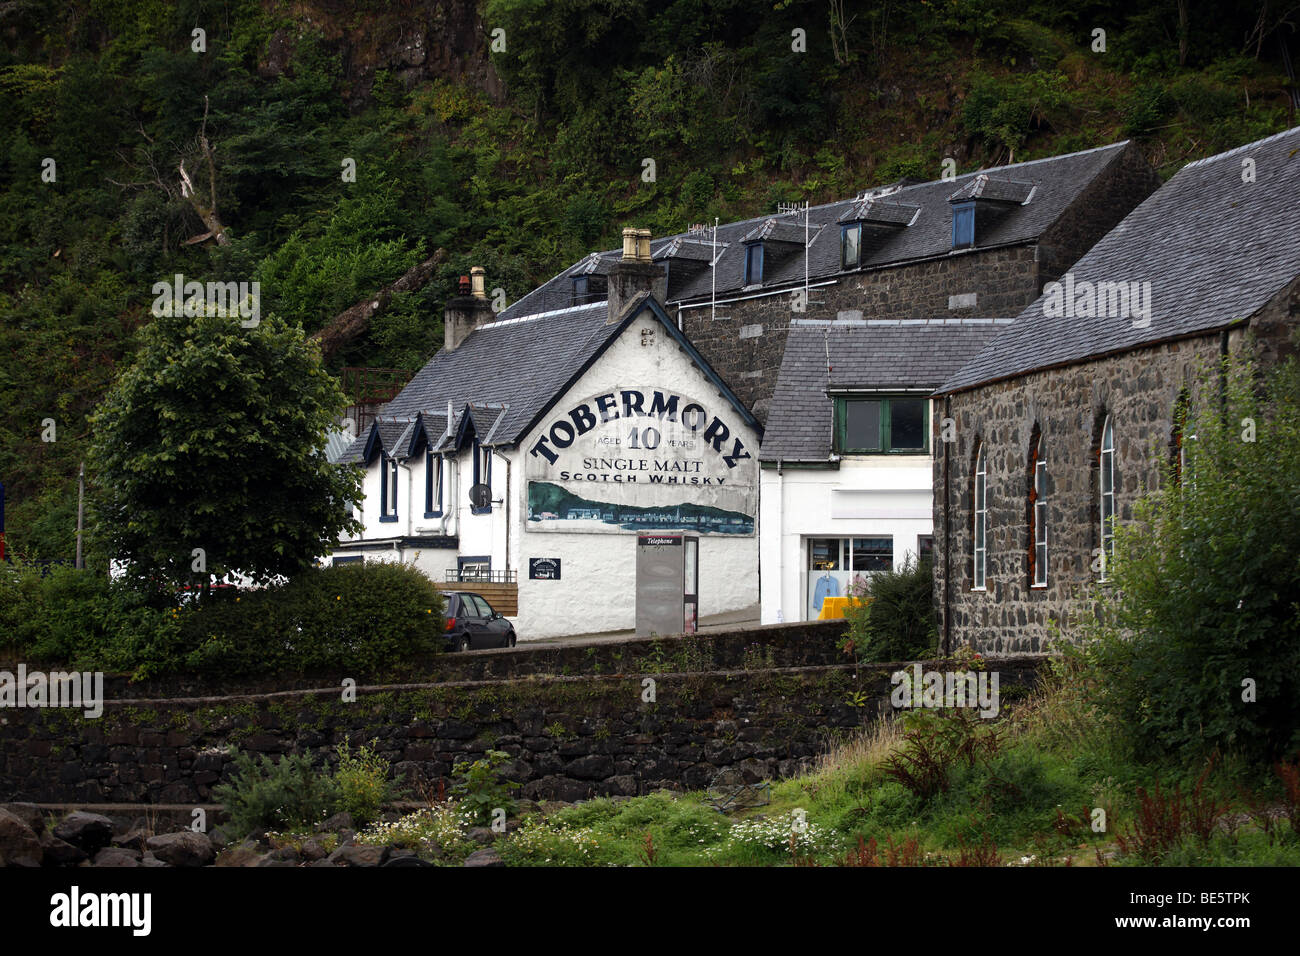 Tobermory Distillery on the Isle of Mull - Stock Image